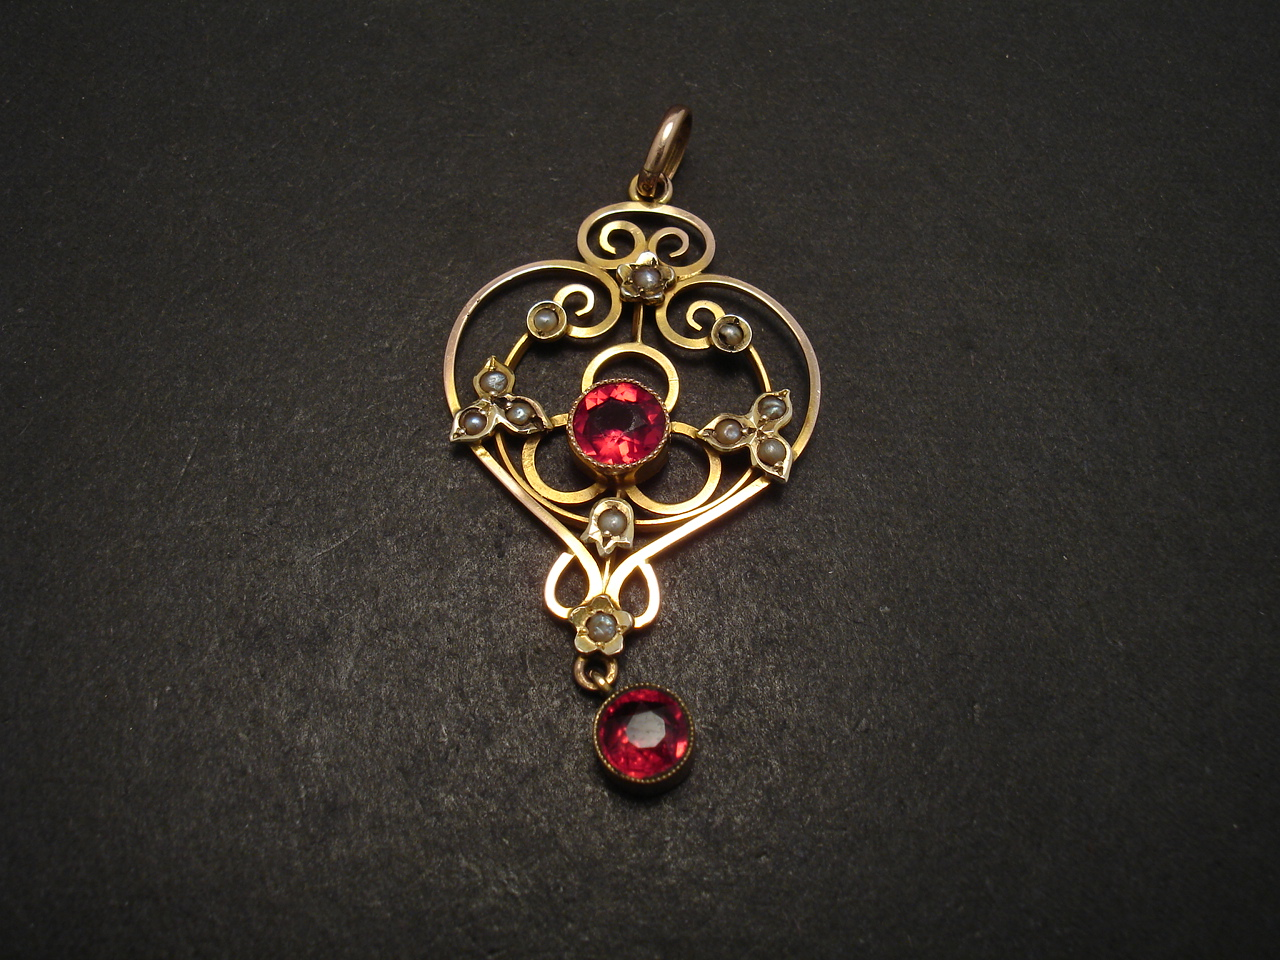 click jewel close views jewelstore necklace ruby on pendant designer antique additional for below images jewelry